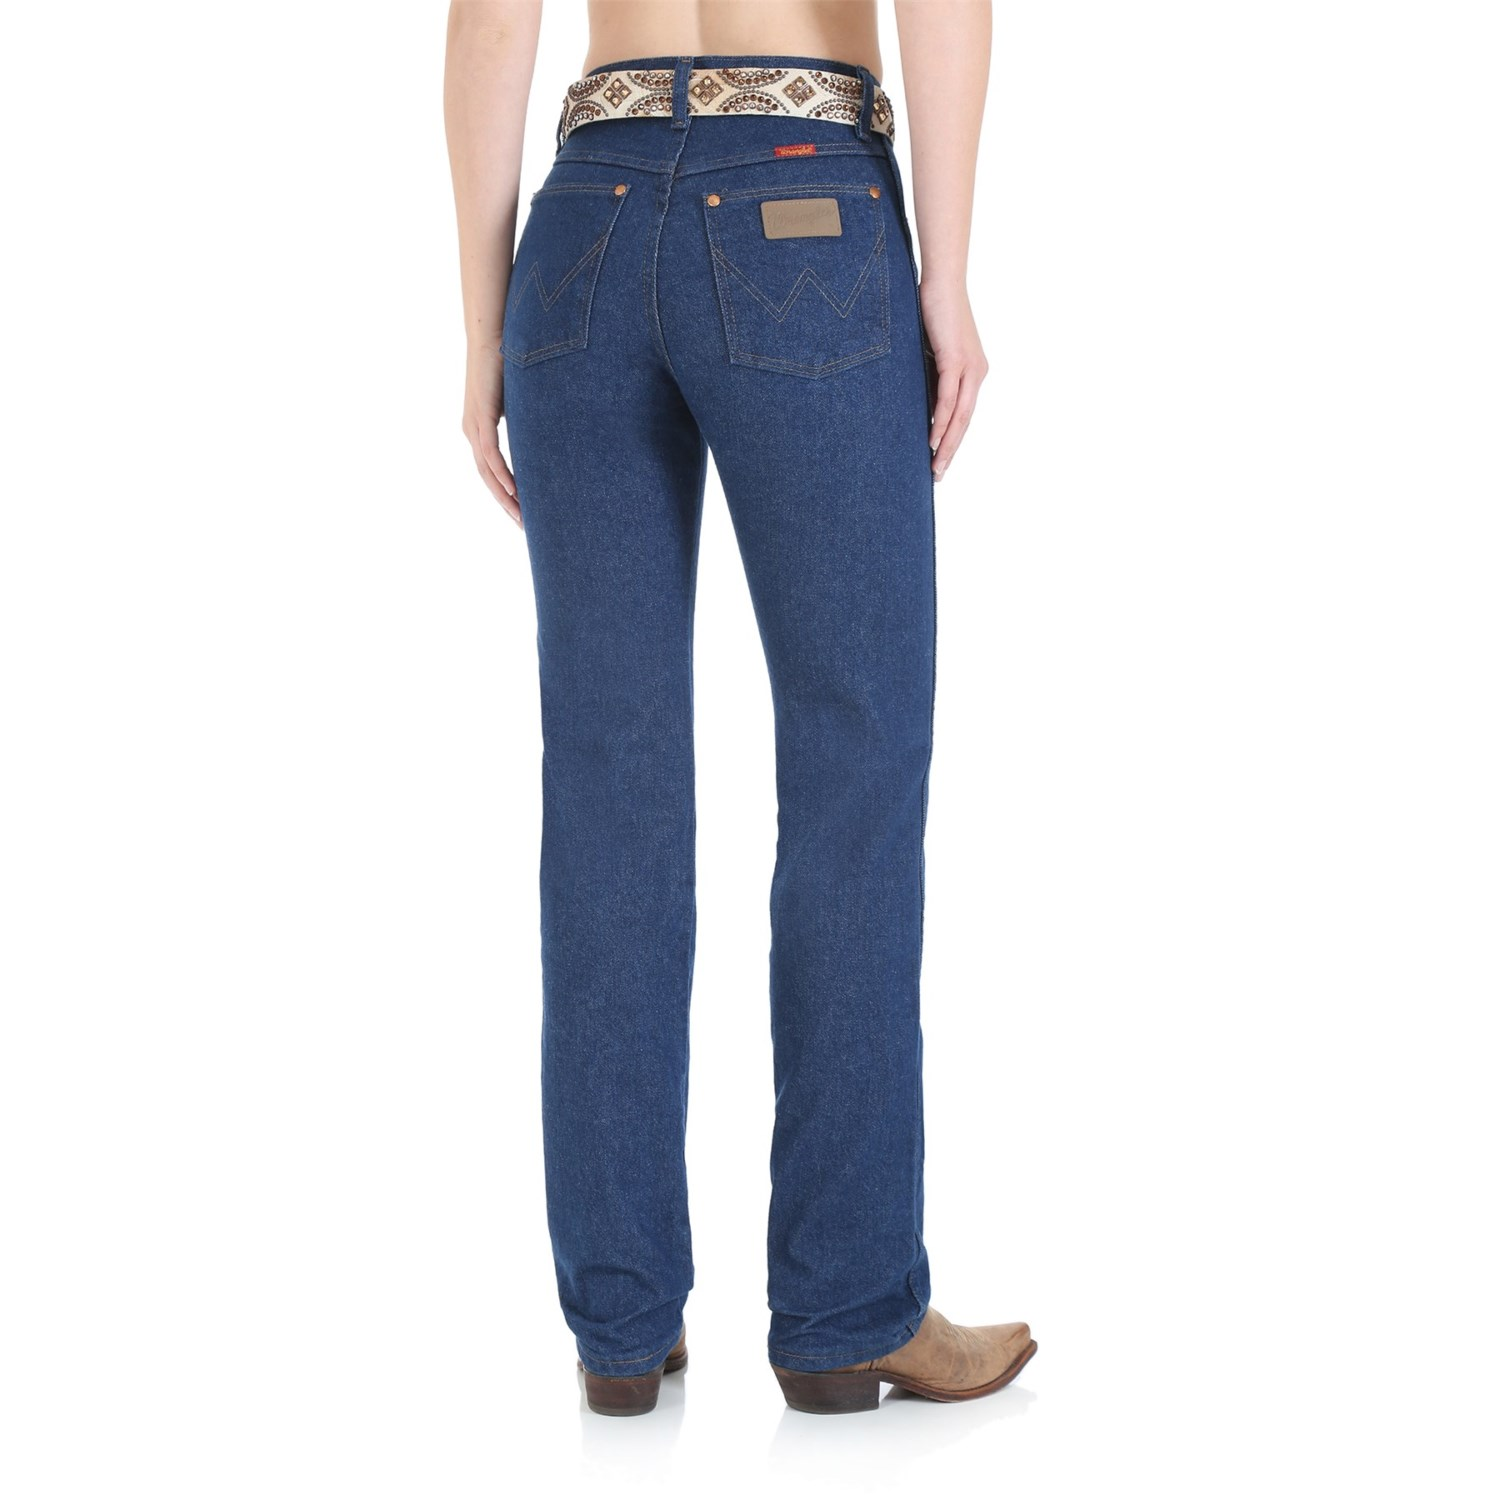 Wrangler Prewashed Classic Cowboy Cut Jeans (For Women) - Save 50%